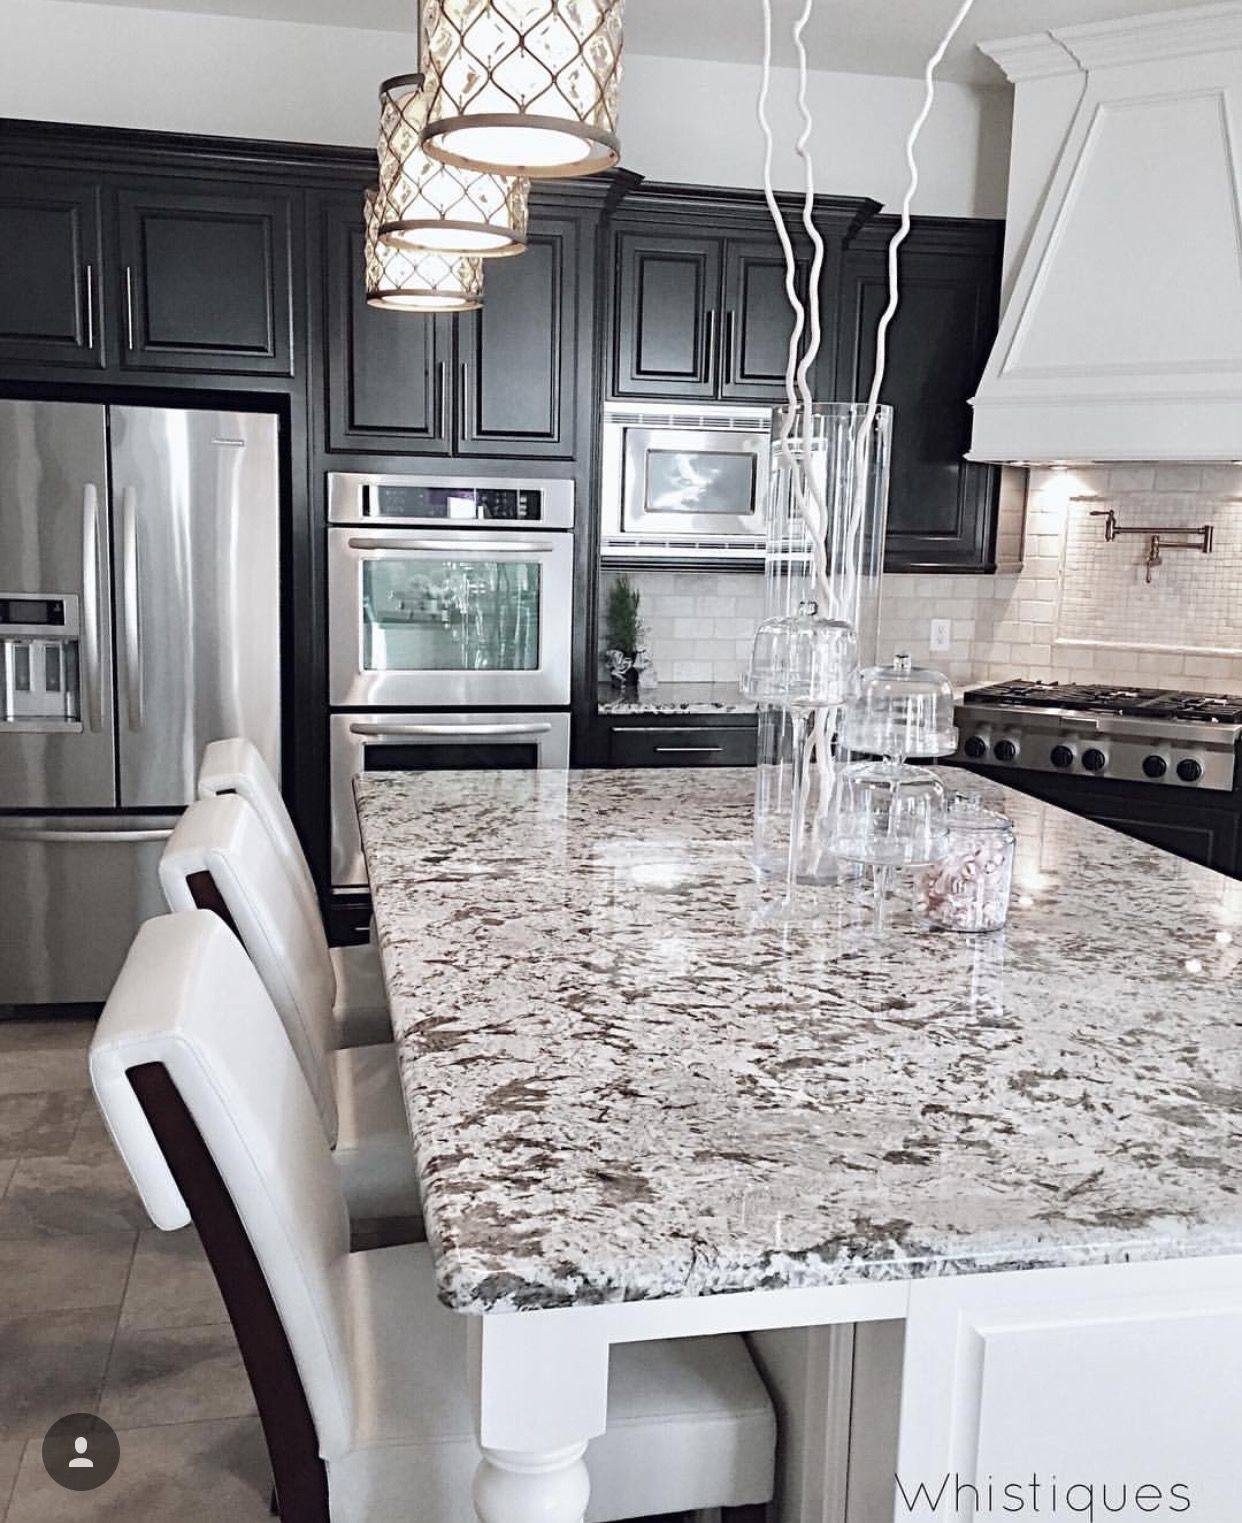 Decoraciones Casas Pequeñas Black White Stainless Love The Countertop Beauty Cyn